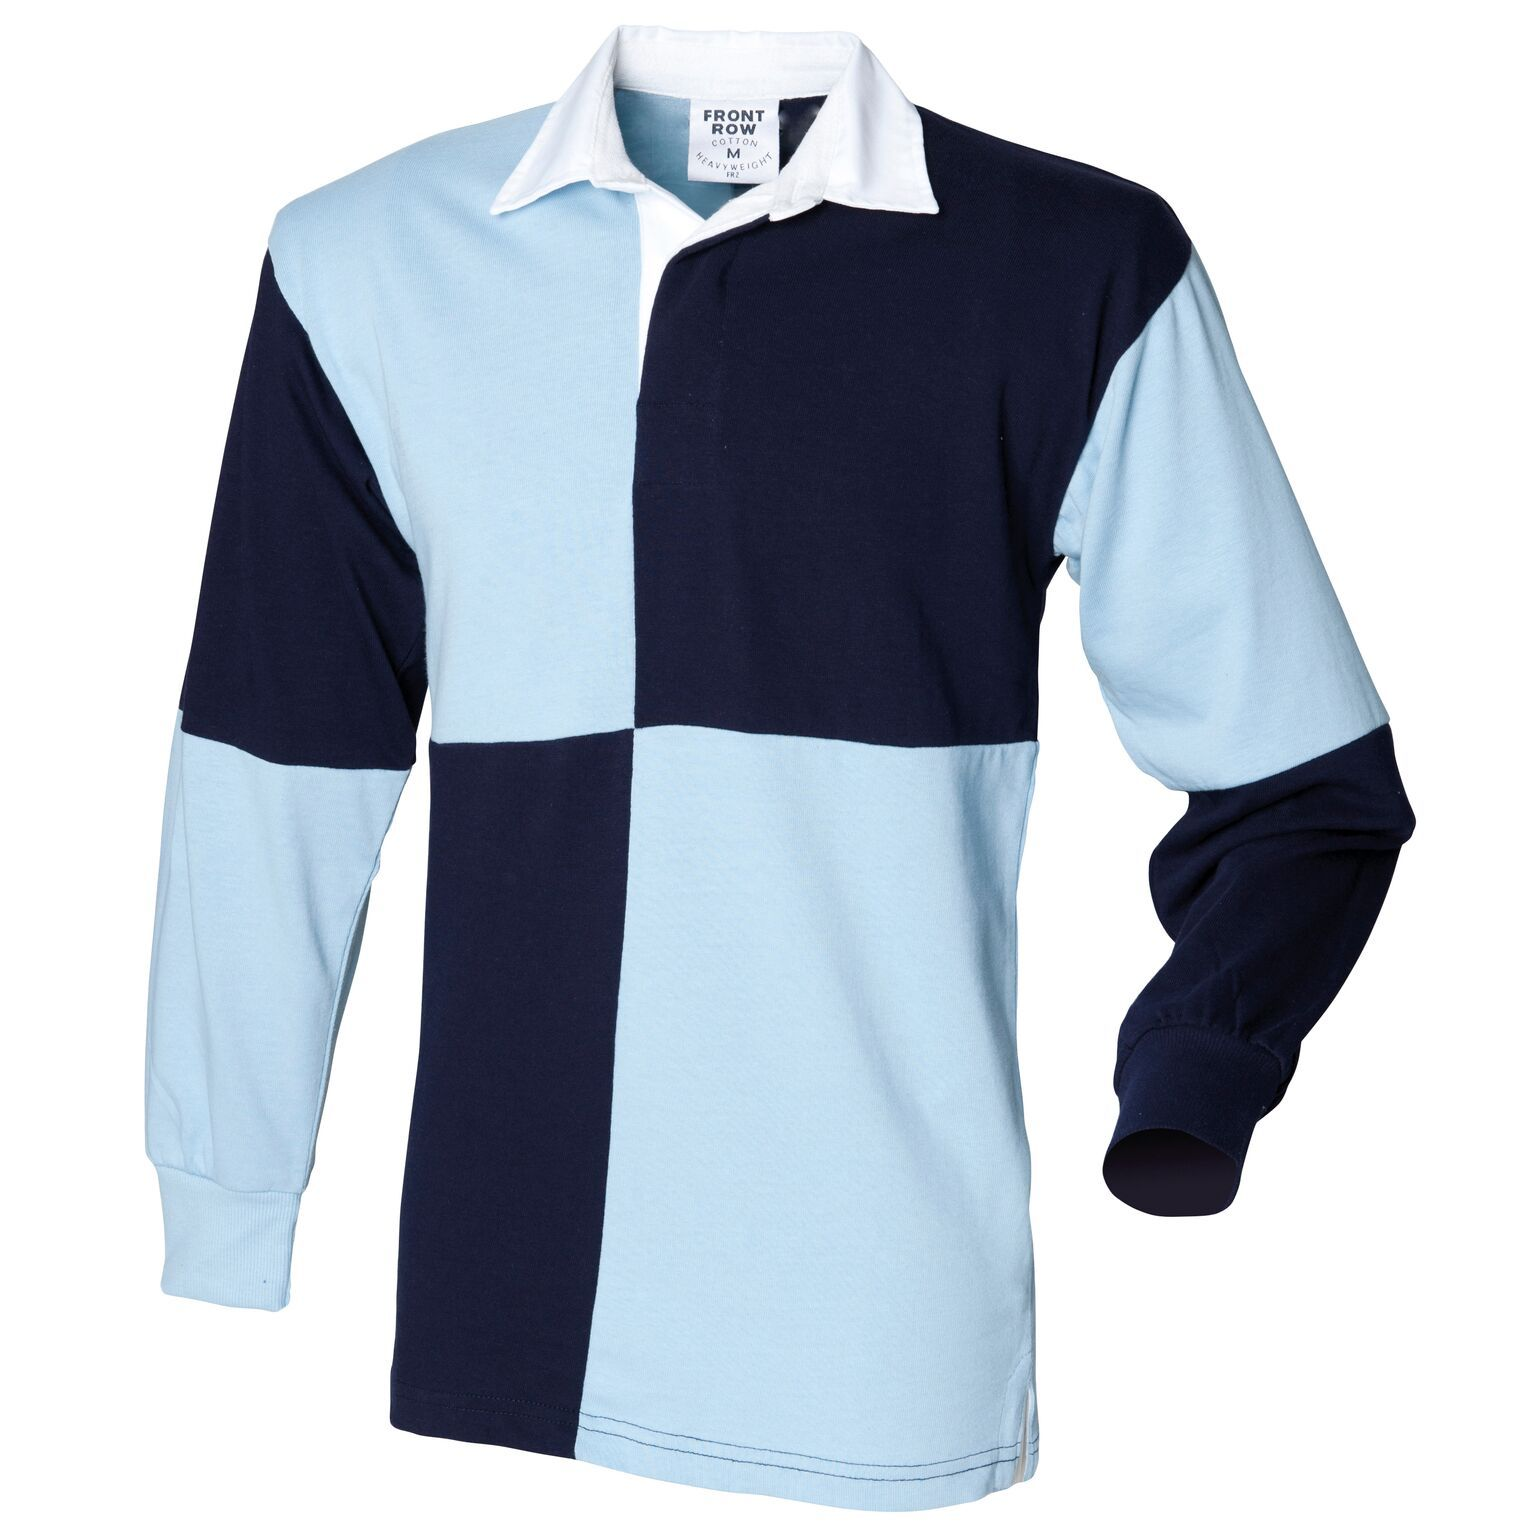 Quartered Rugby Style Polo Shirt In 2020 Rugby Shirt Polo Shirt Rugby Fashion